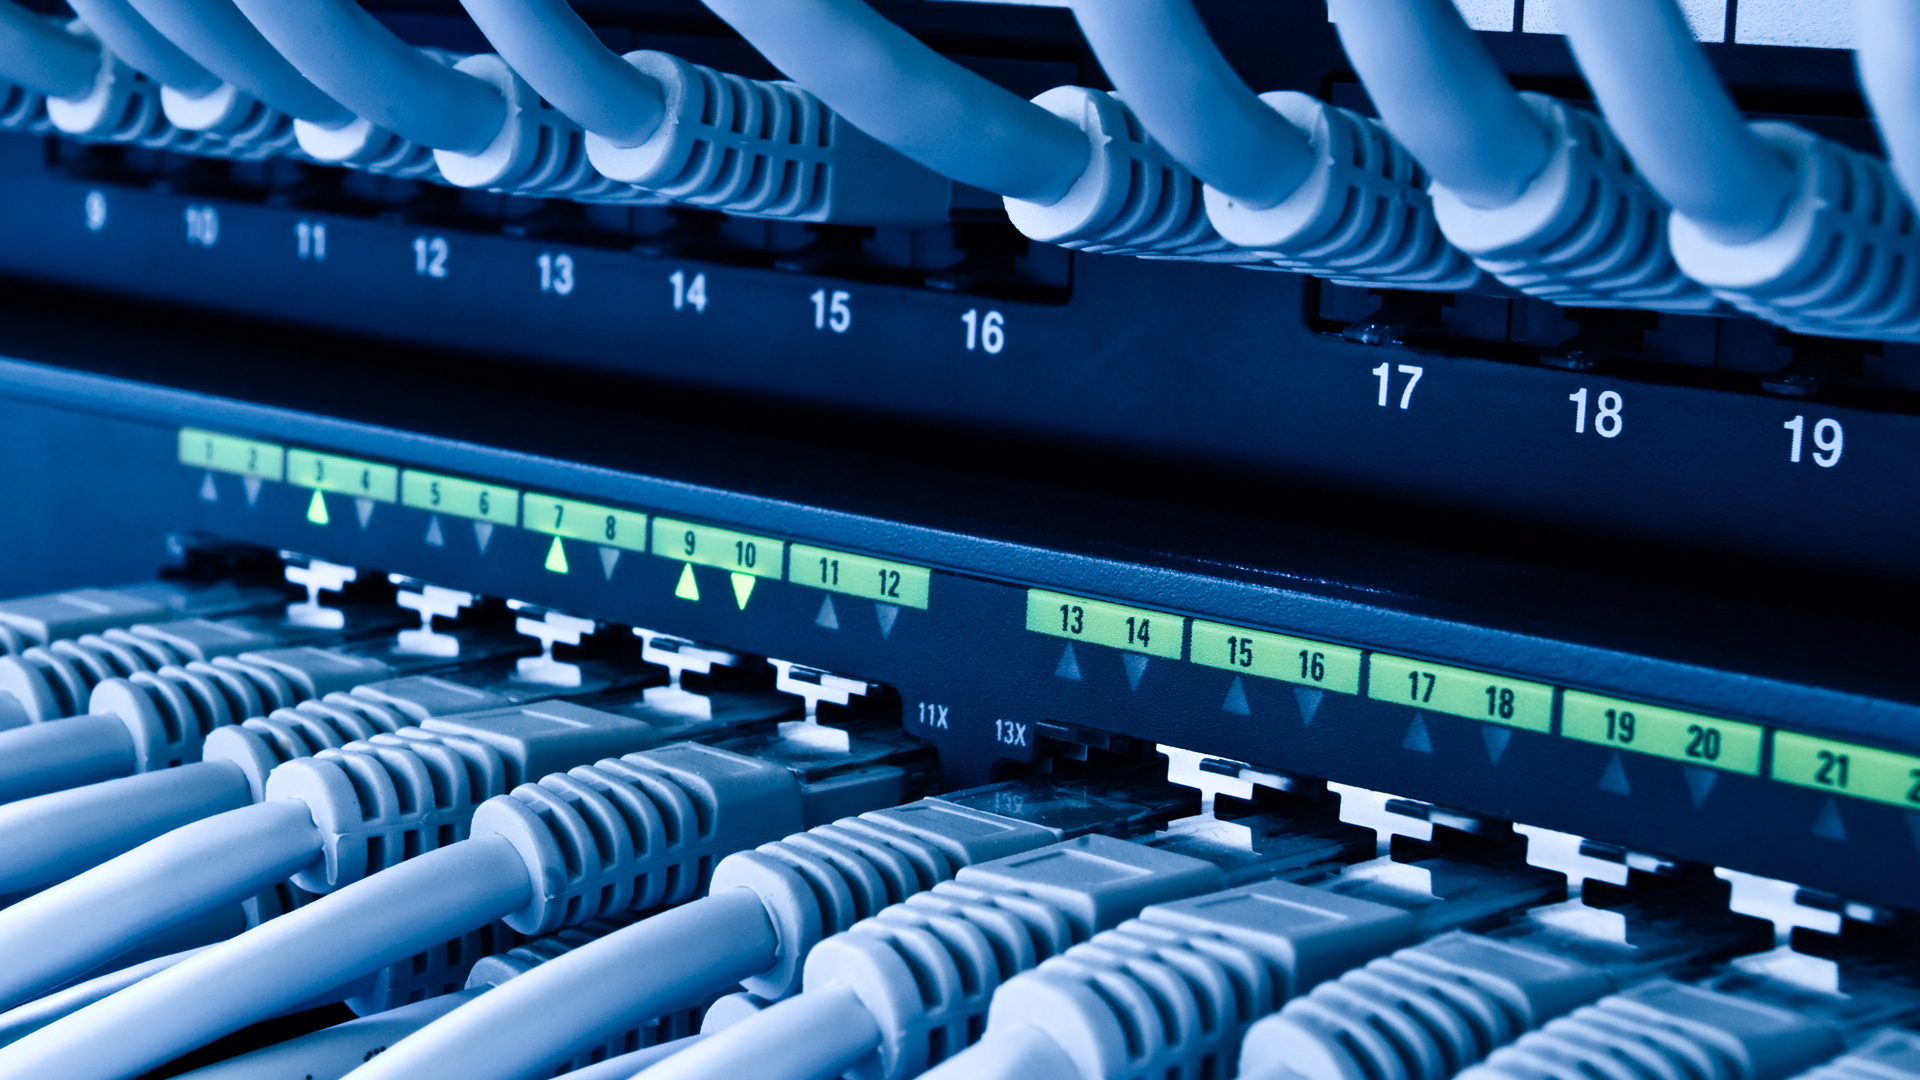 Blue-Network-Cables-Switch-Rack-Cabling-LAN-RJ45-Lead-Server